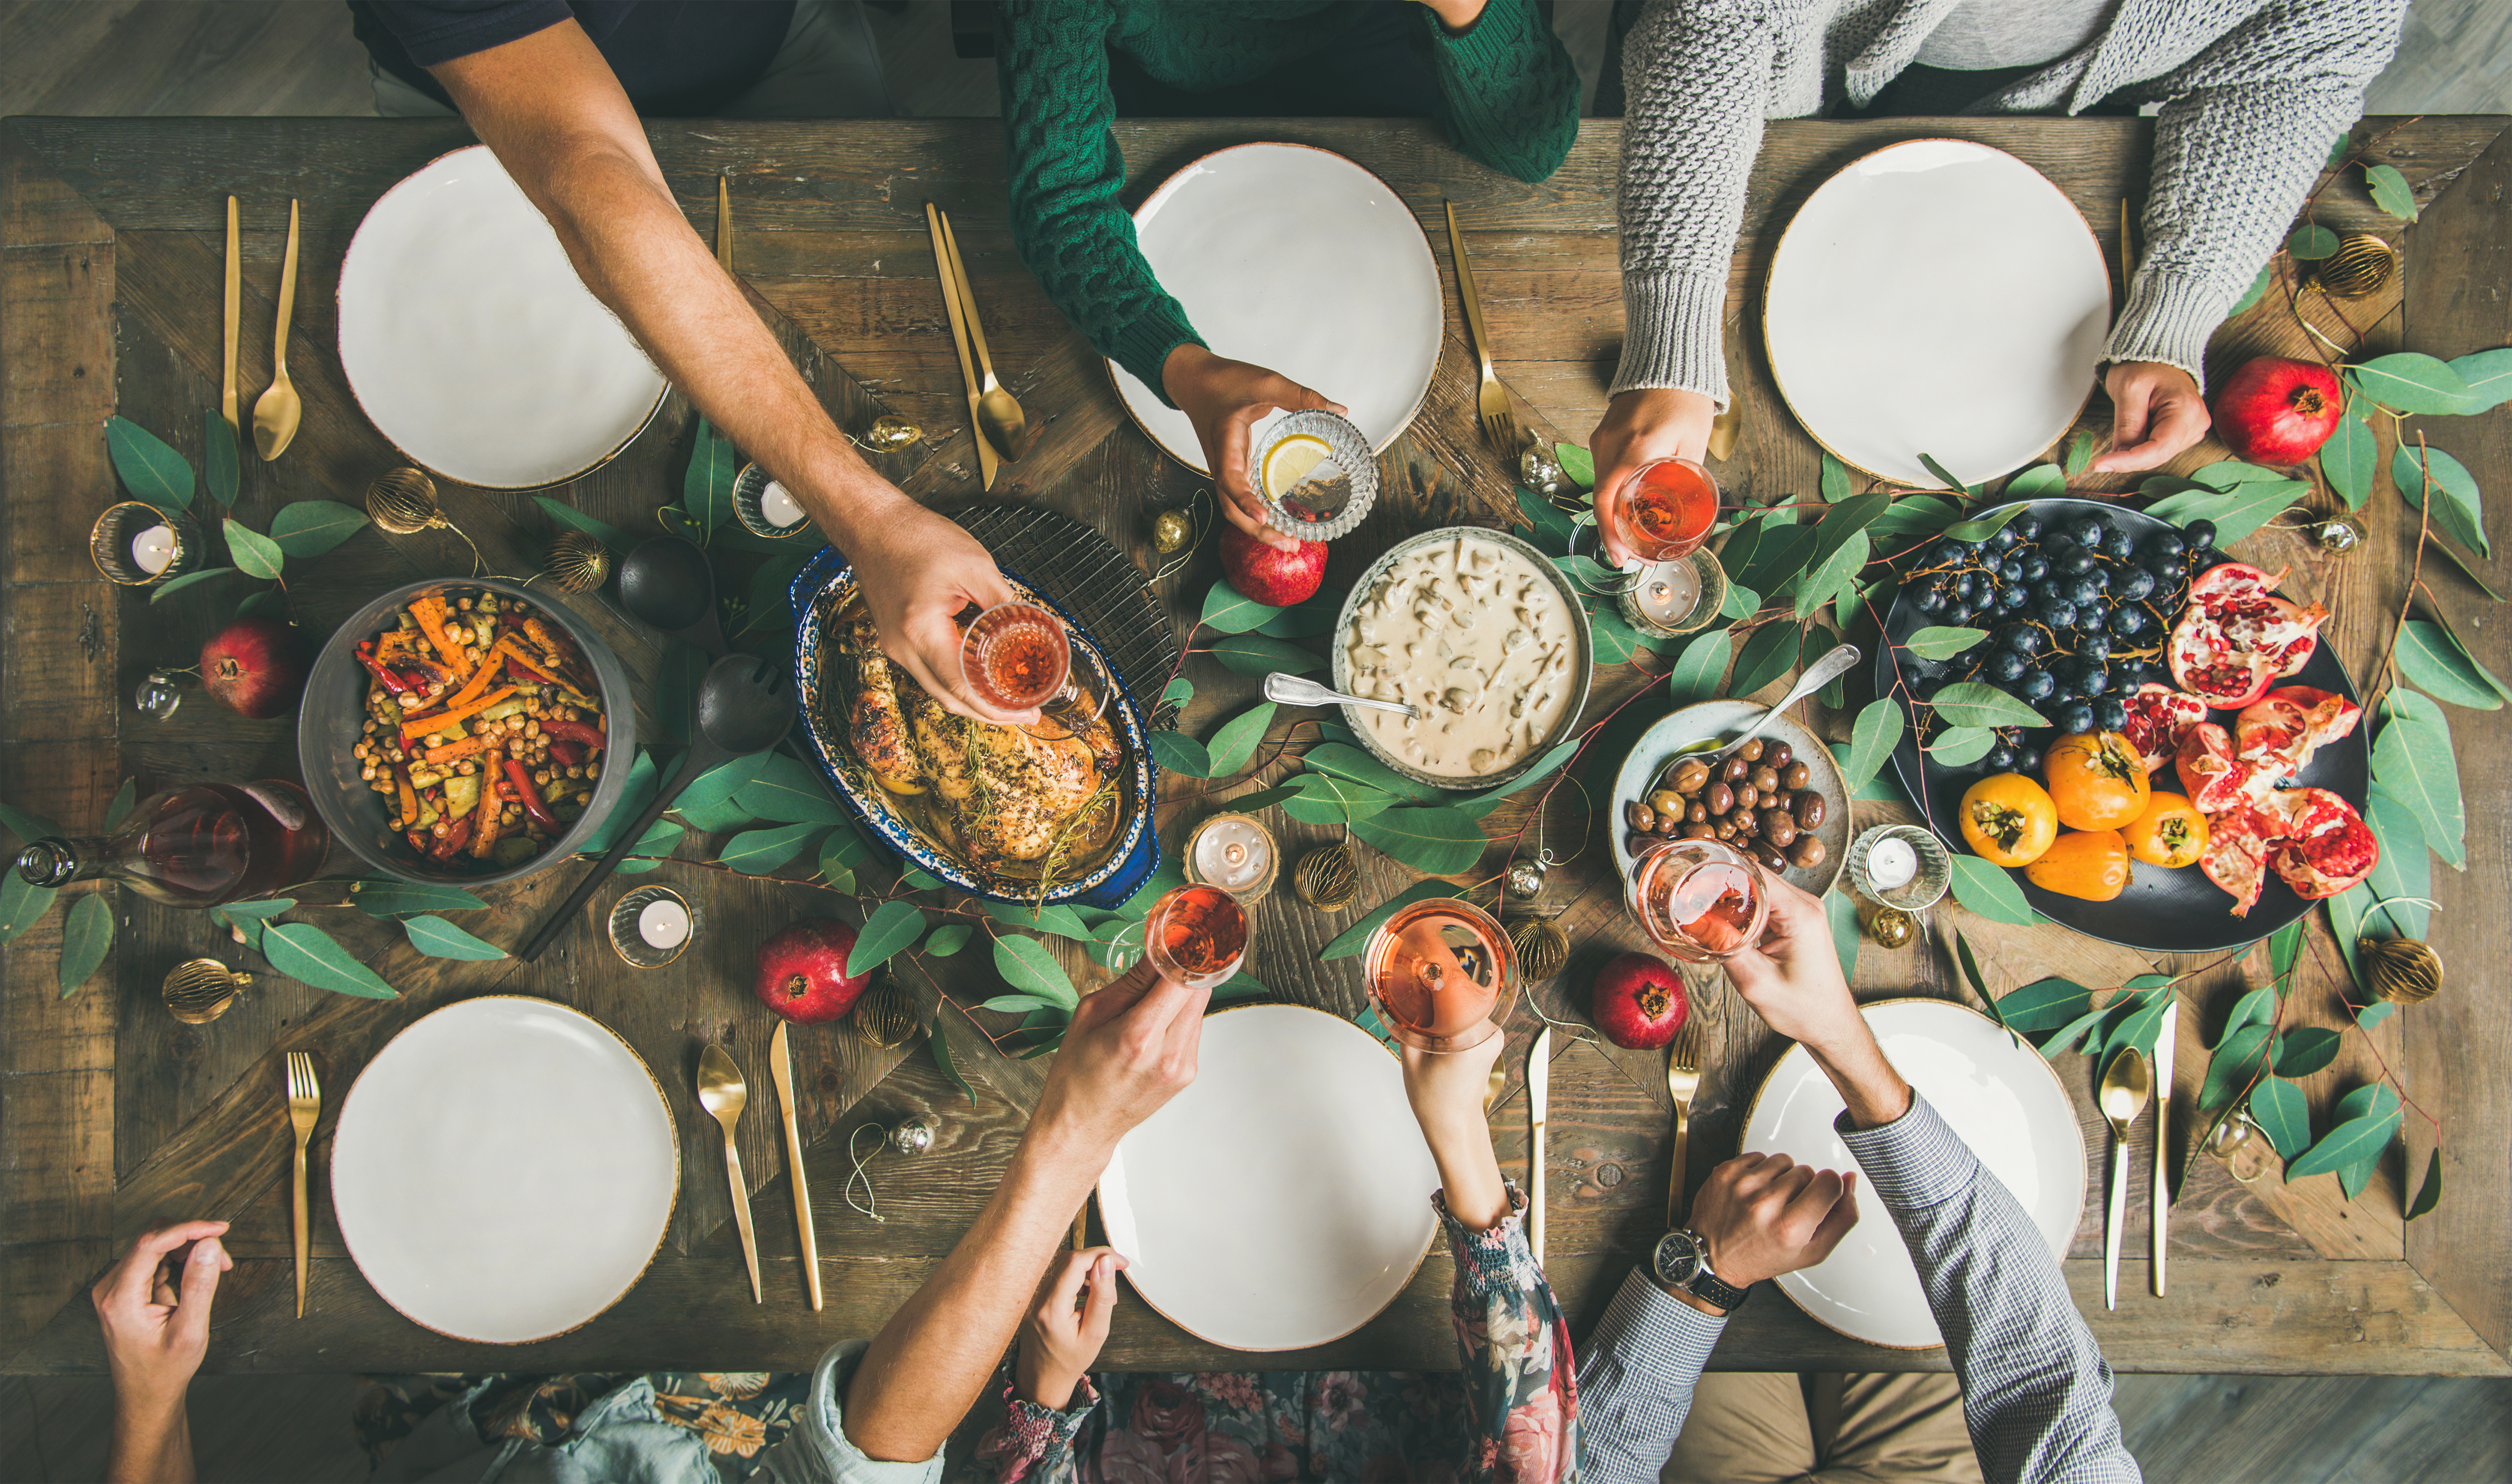 Holiday dinner | Gabby Bernstein's 5 ways to avoid family drama during the holiday season